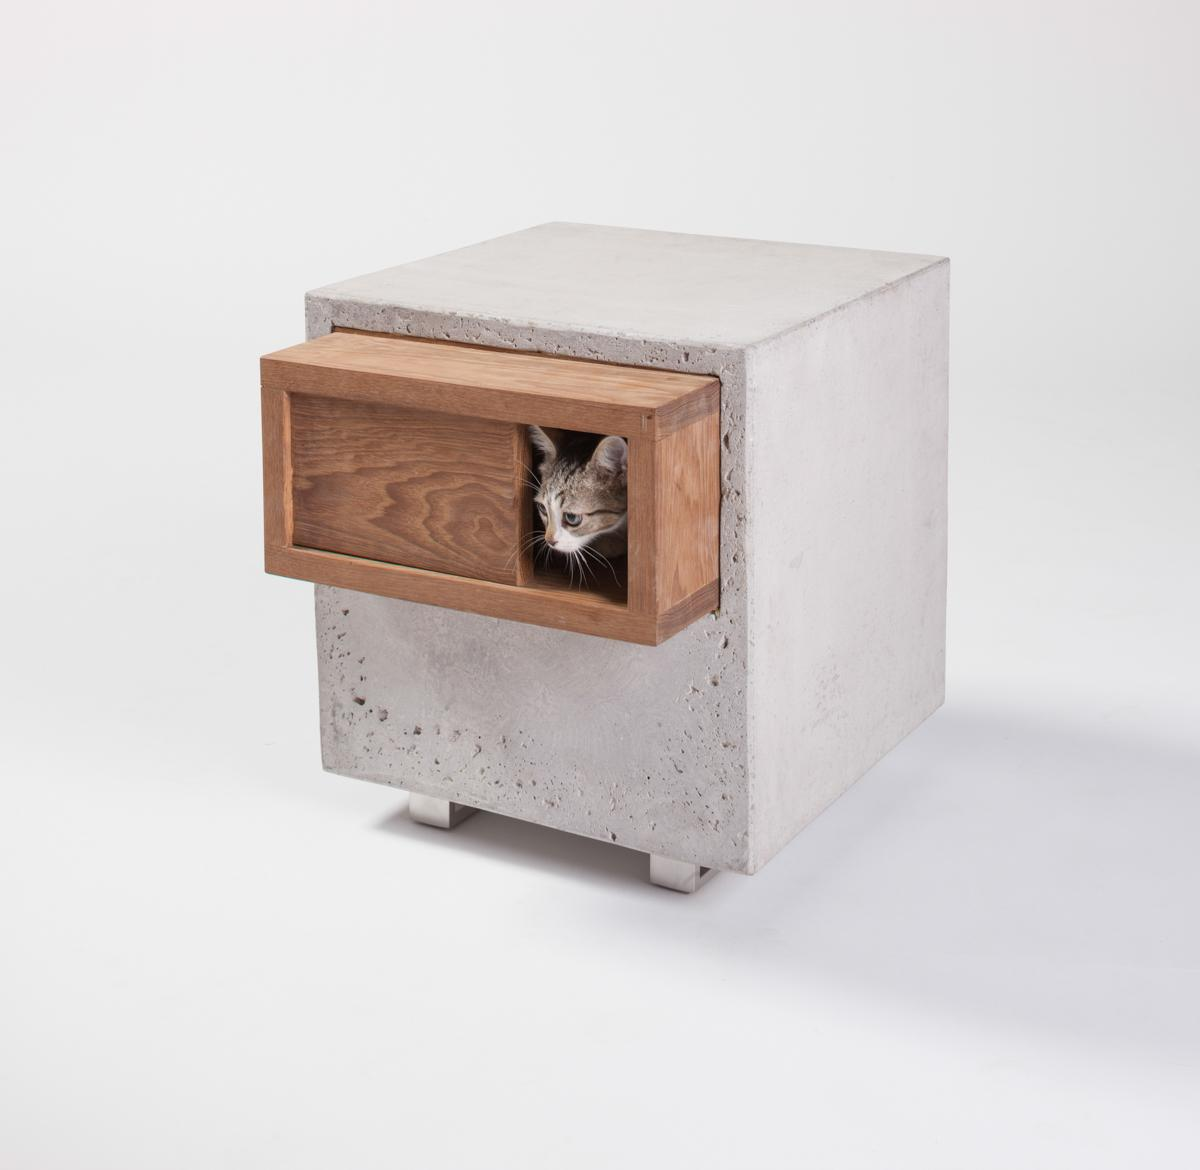 Brutalist Architecture for Cats http://t.co/hPXJSL7vl0